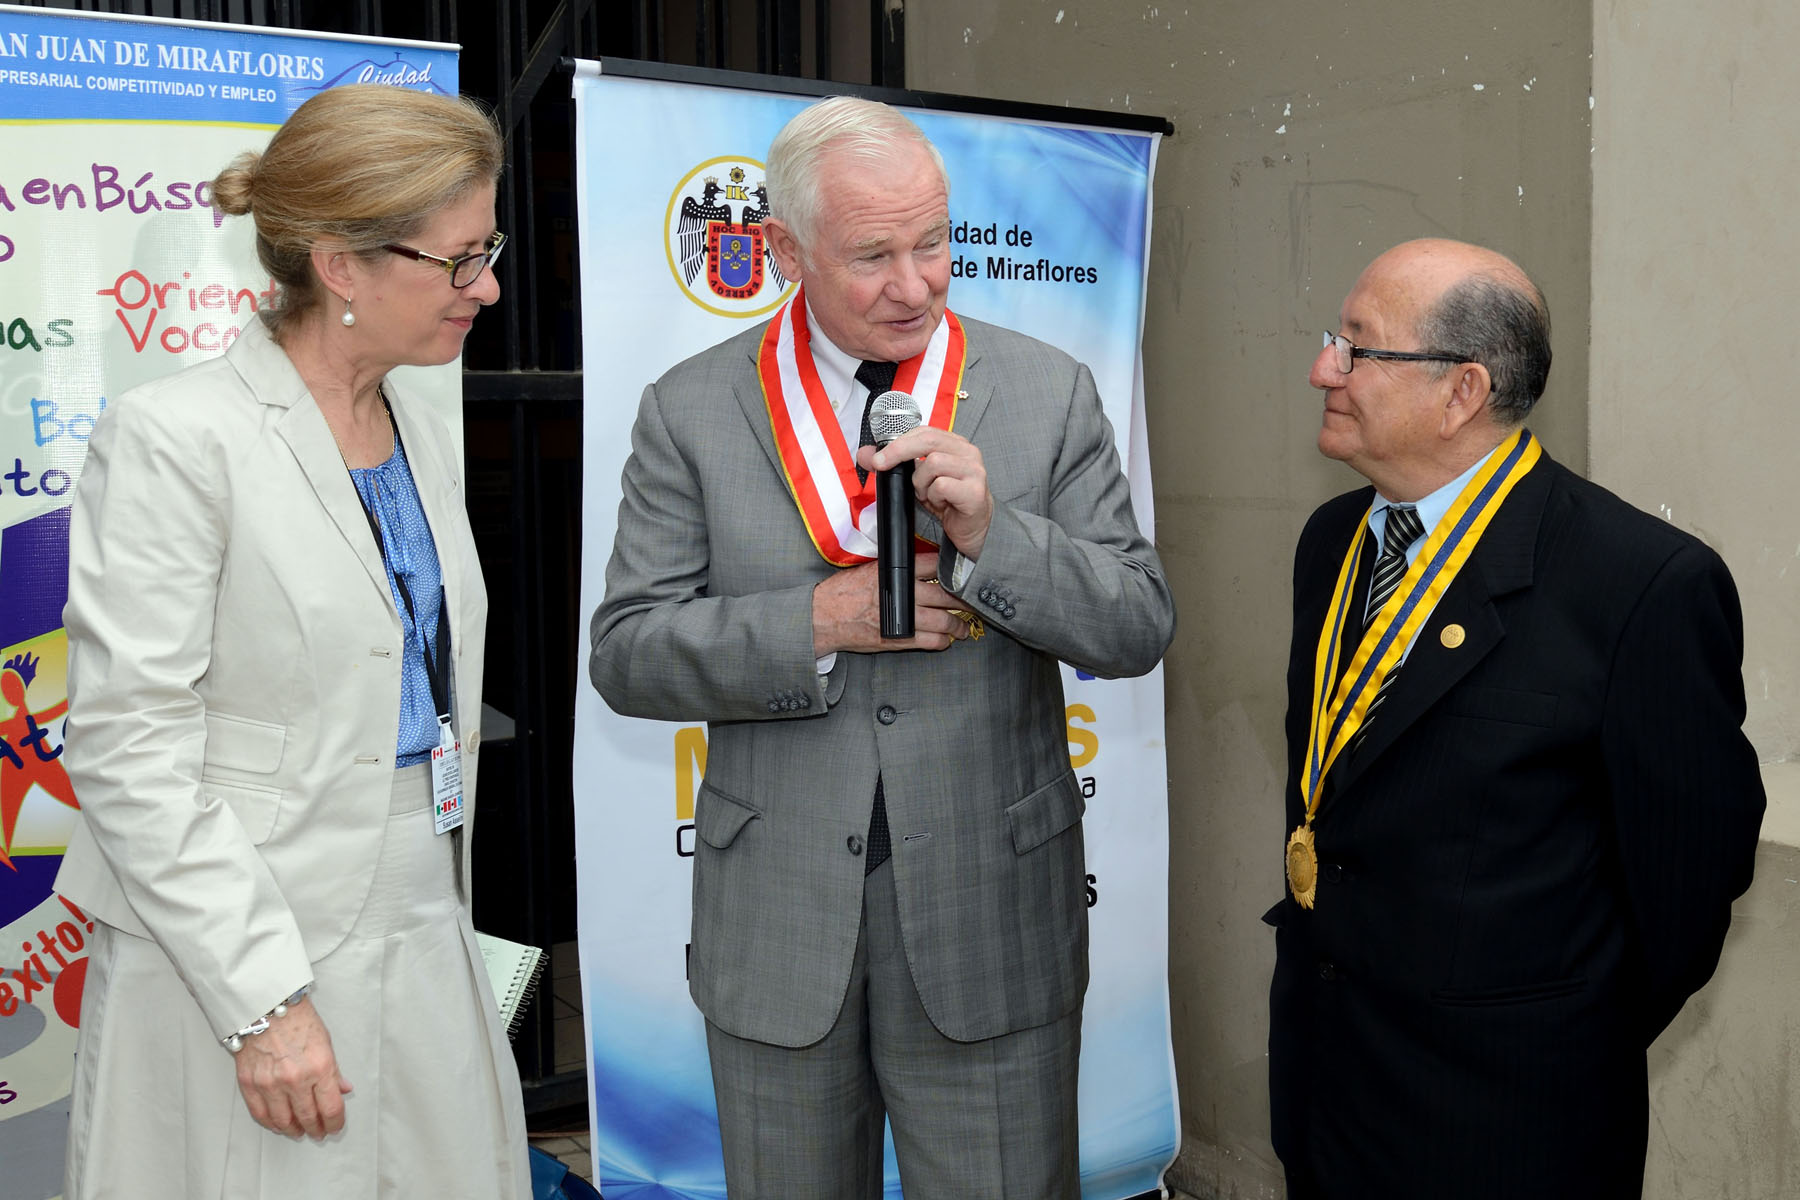 During his visit to the Centro de Jóvenes y Empleo, His Excellency the Right Honourable David Johnston, Governor General of Canada, received the civic medal from His Worship Adolfo Ocampo Varga, Mayor of San Juan Miraflores (right).